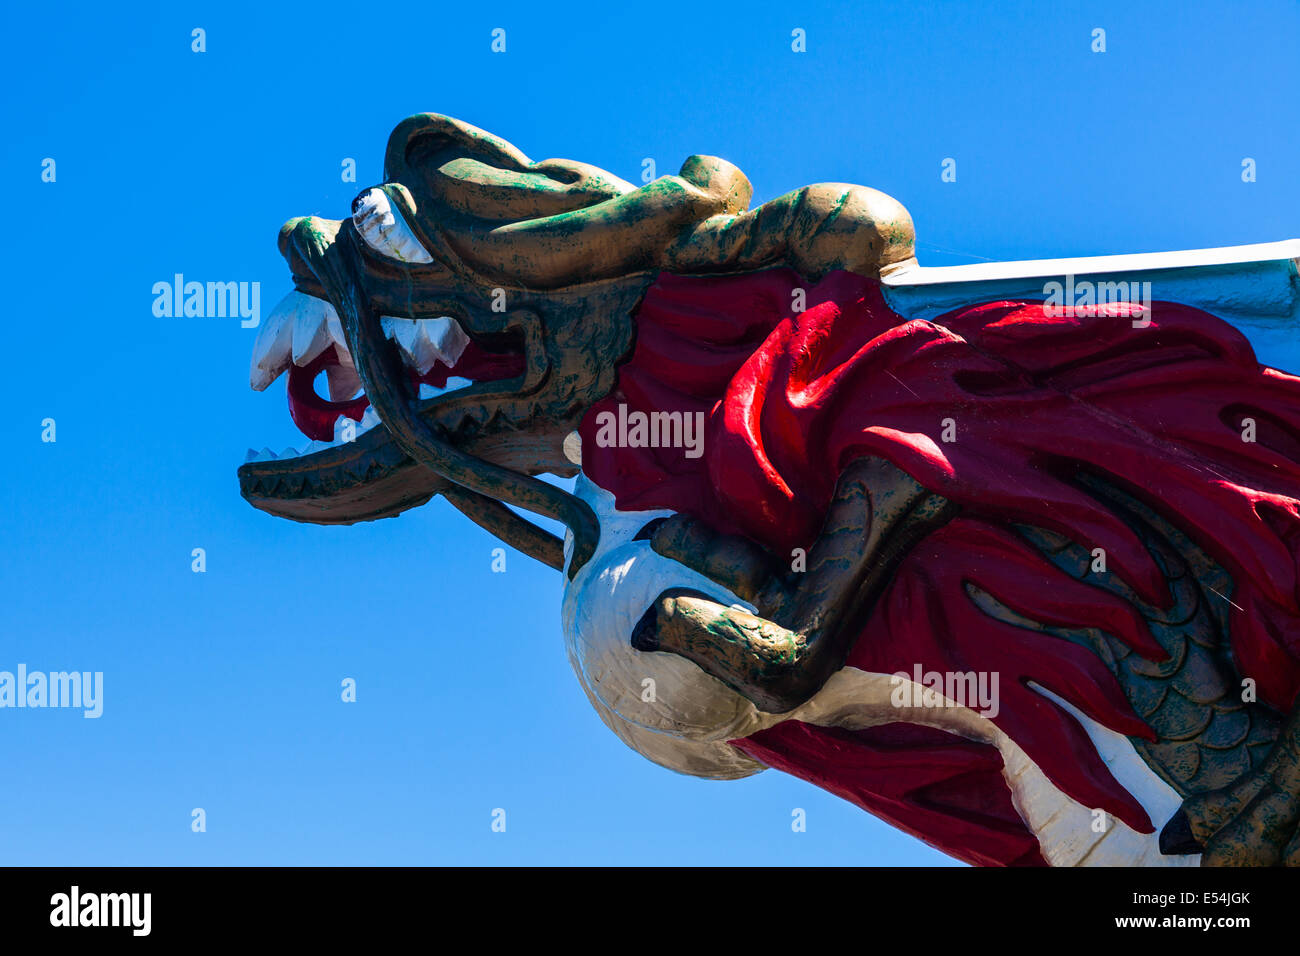 Flaming Dragon head against a blue sky, Stanley Park, Vancouver - Stock Image